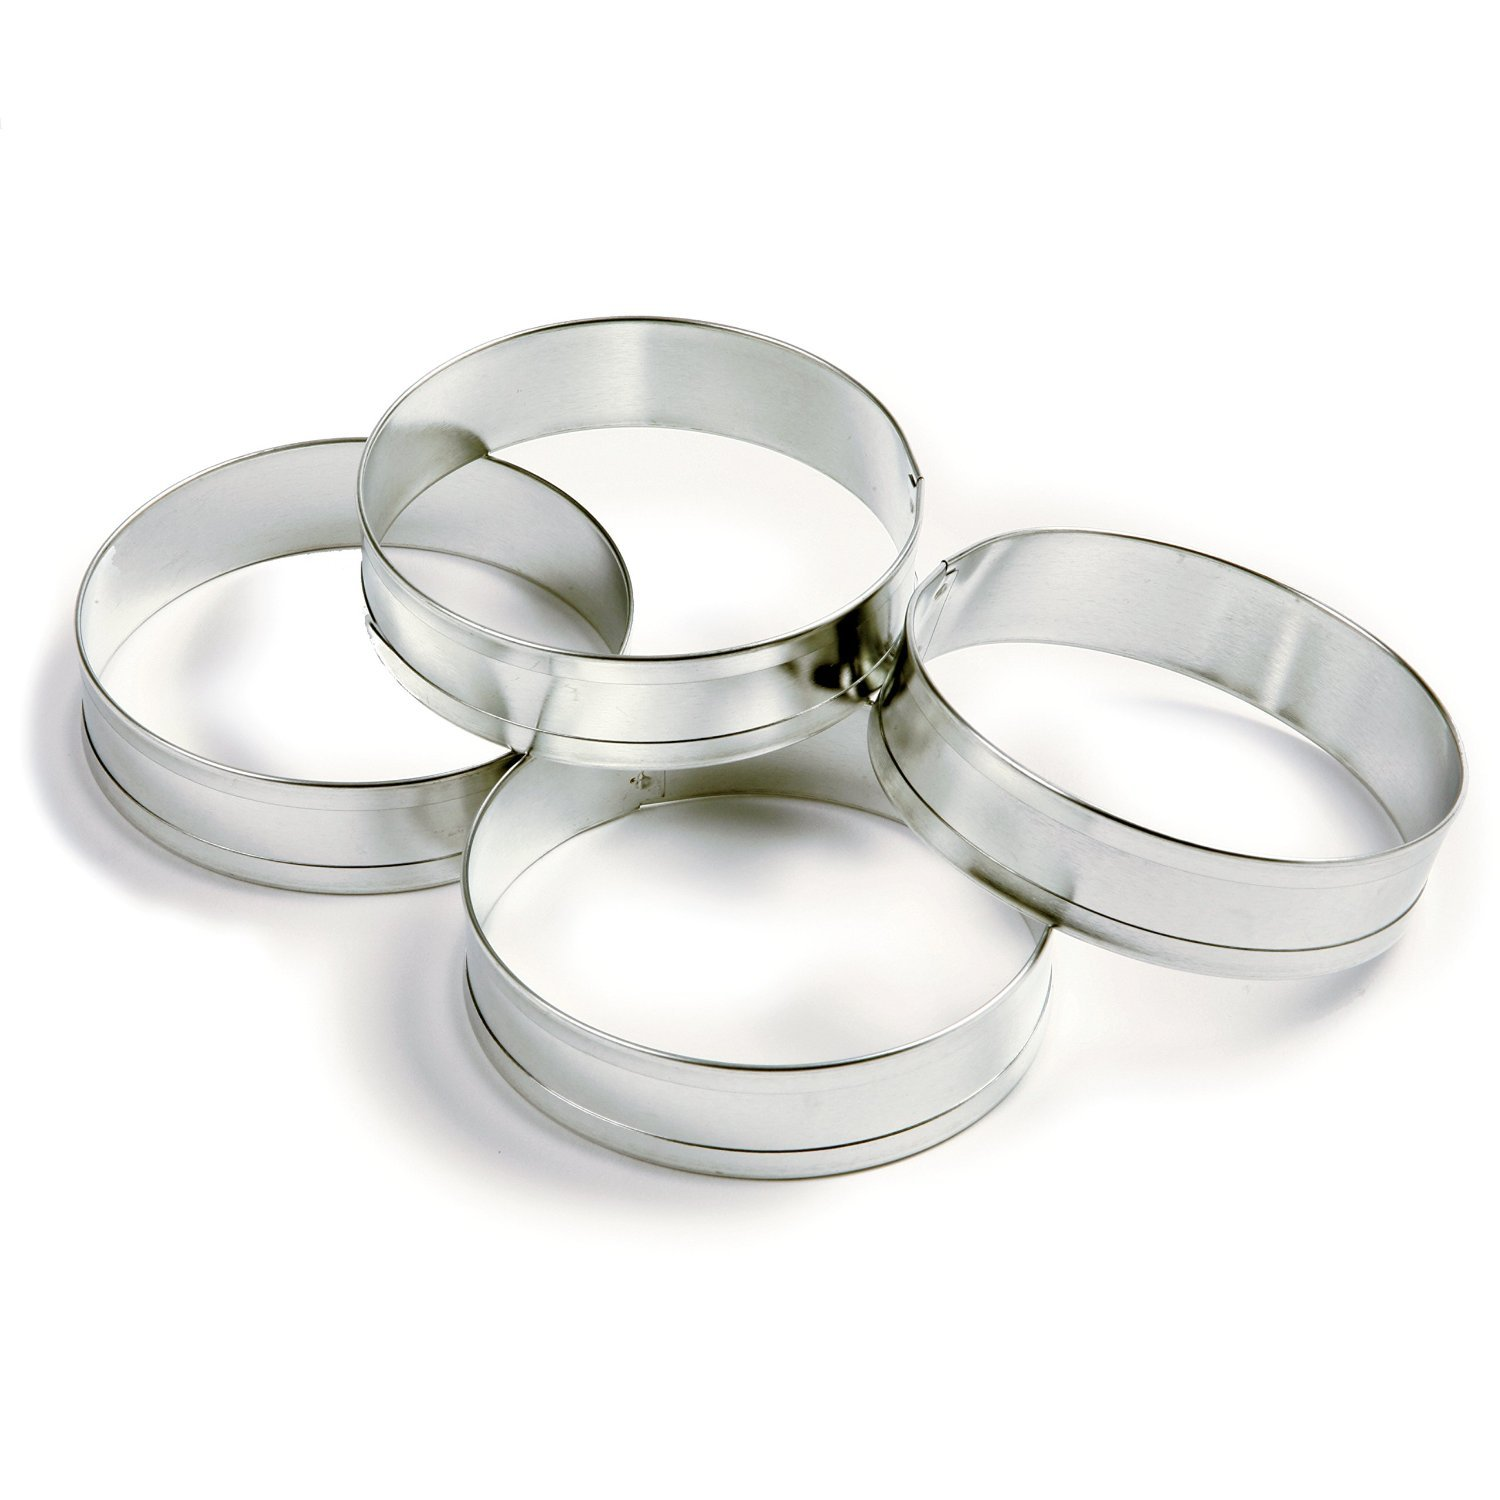 Set of 8 Norpro 3775 Muffin Rings